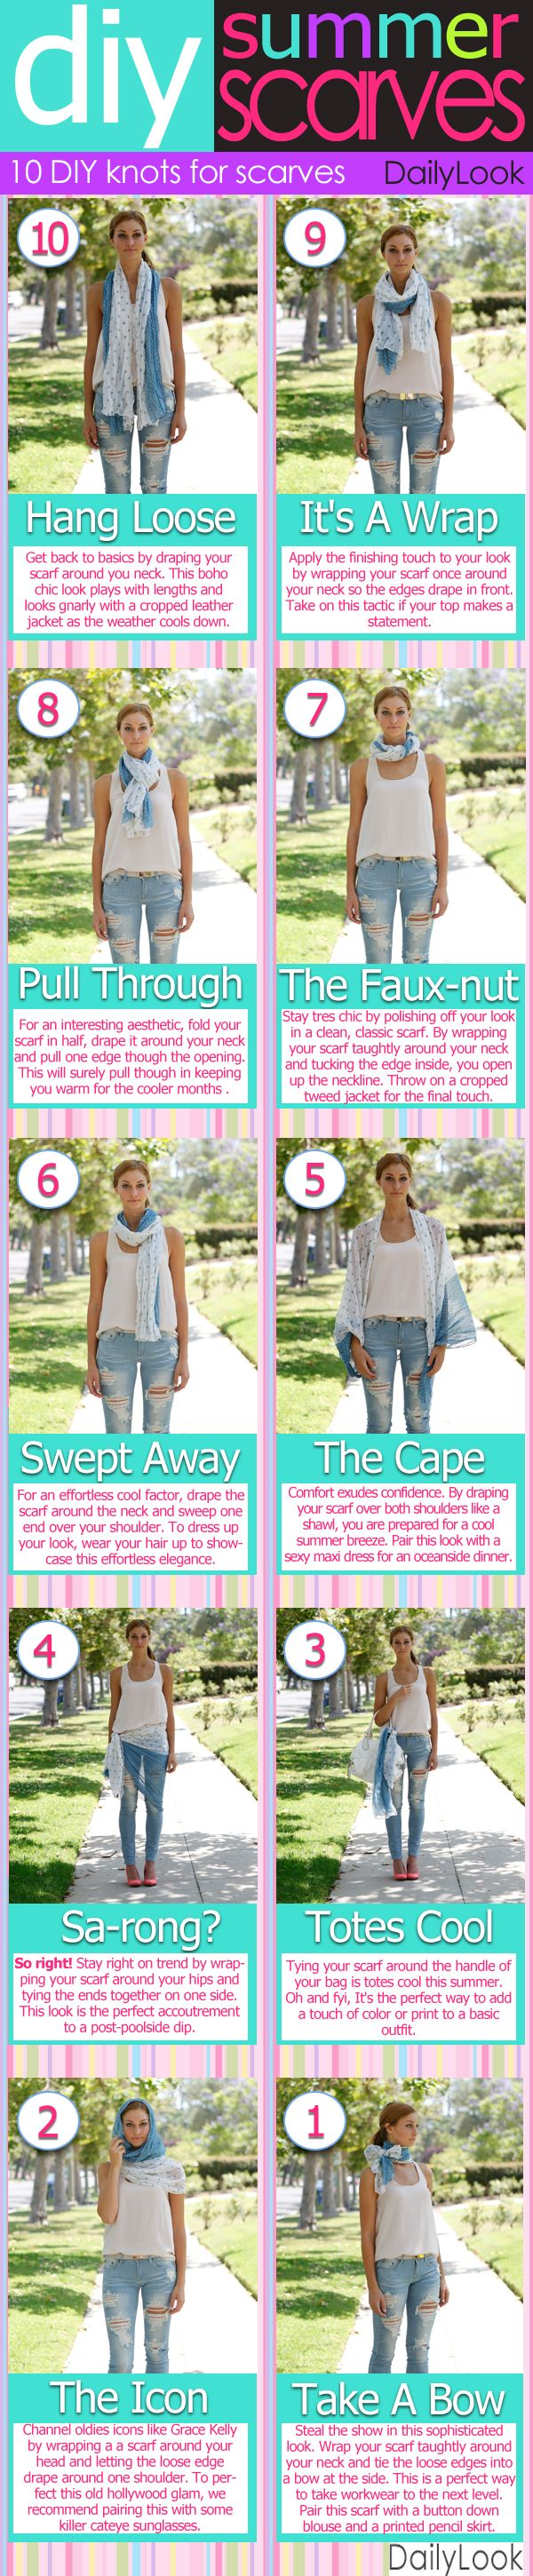 The 10 ways to wear a summer scarf